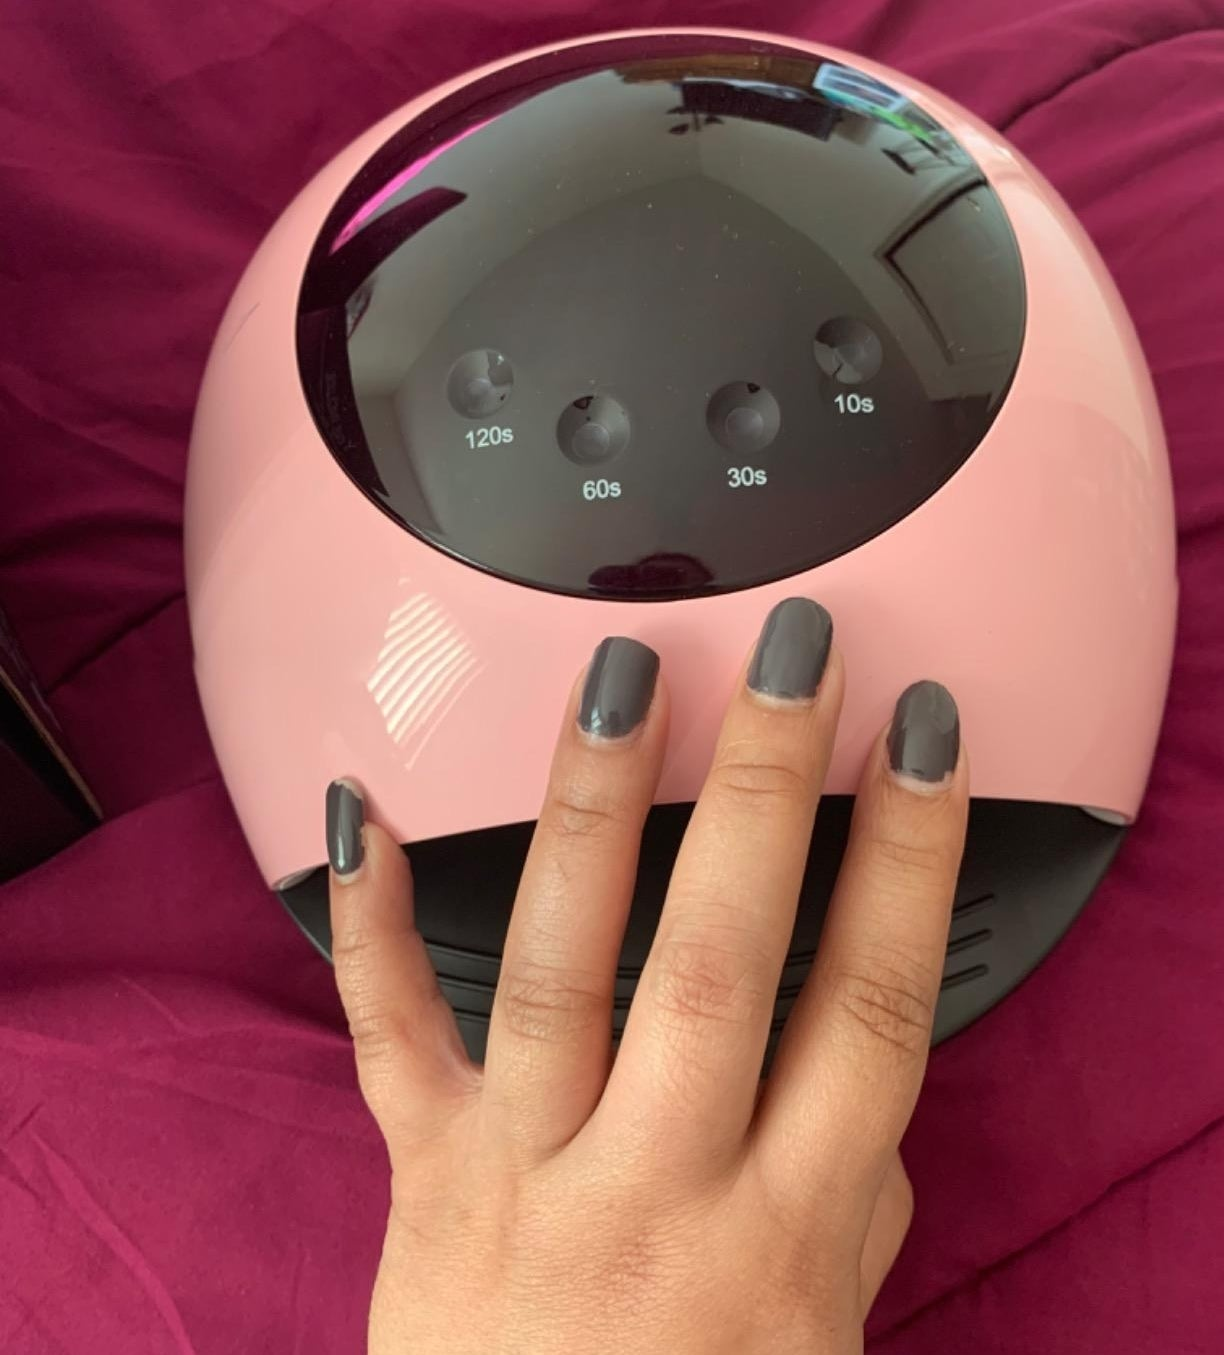 Freshly done nails placed on top of drying lamp